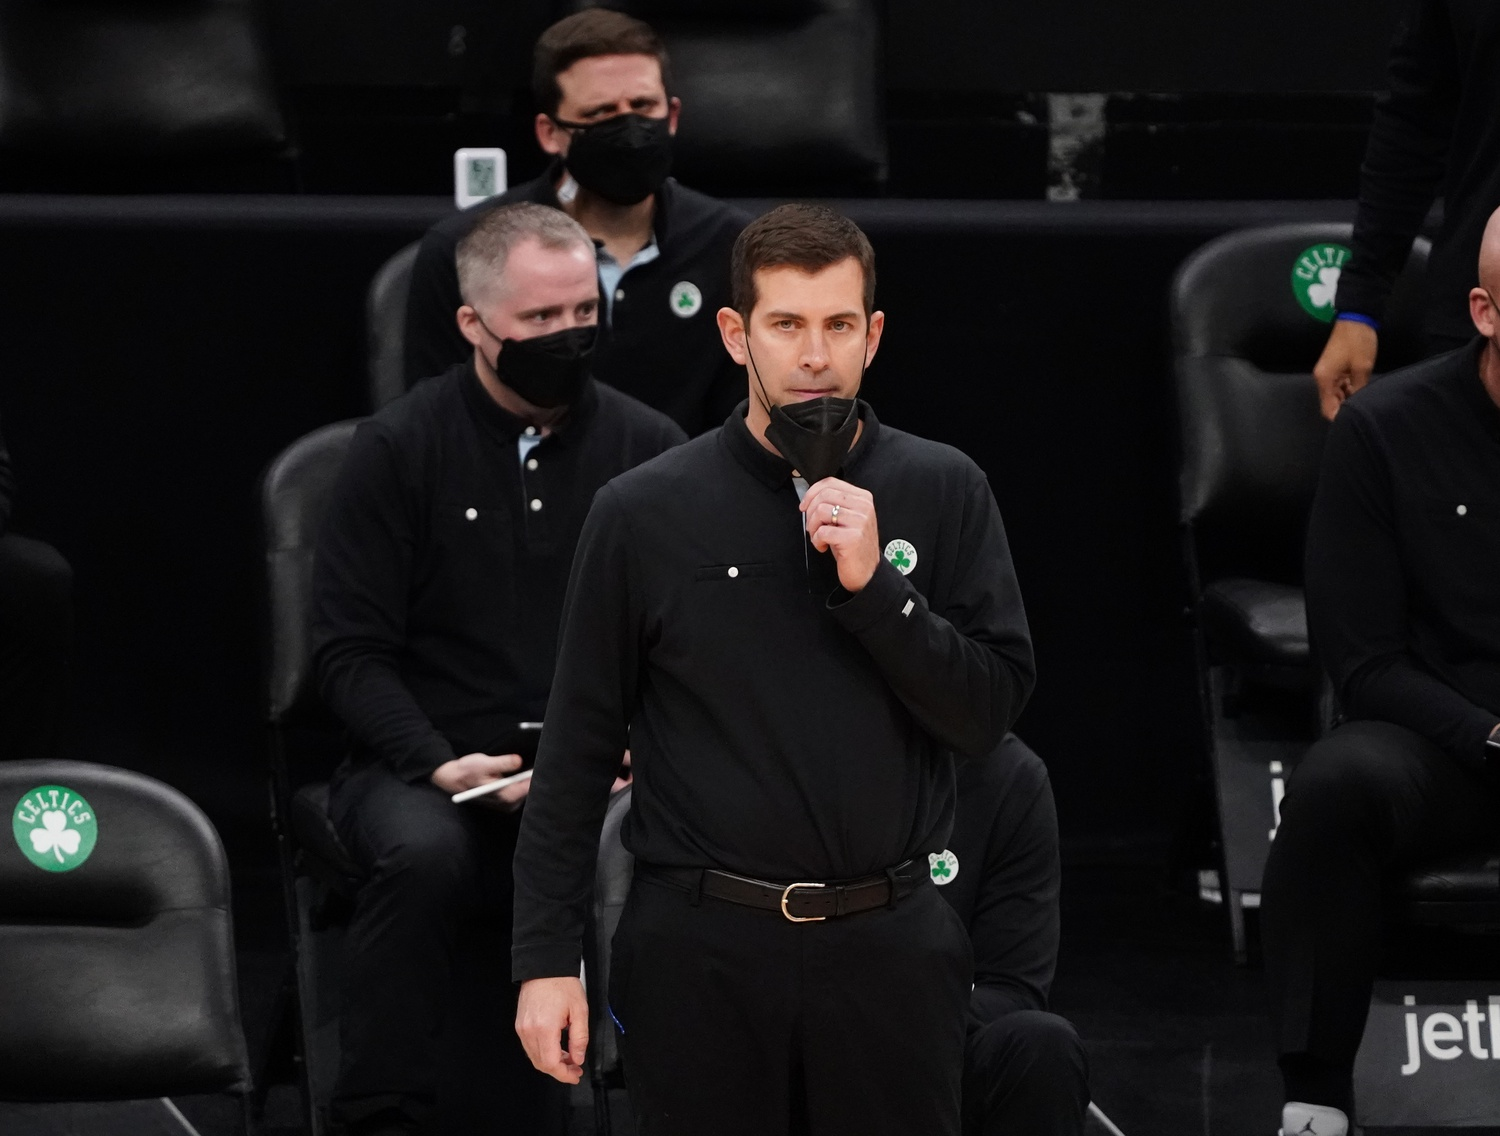 Brad Stevens destroys speculation about him coaching Indiana Hoosiers